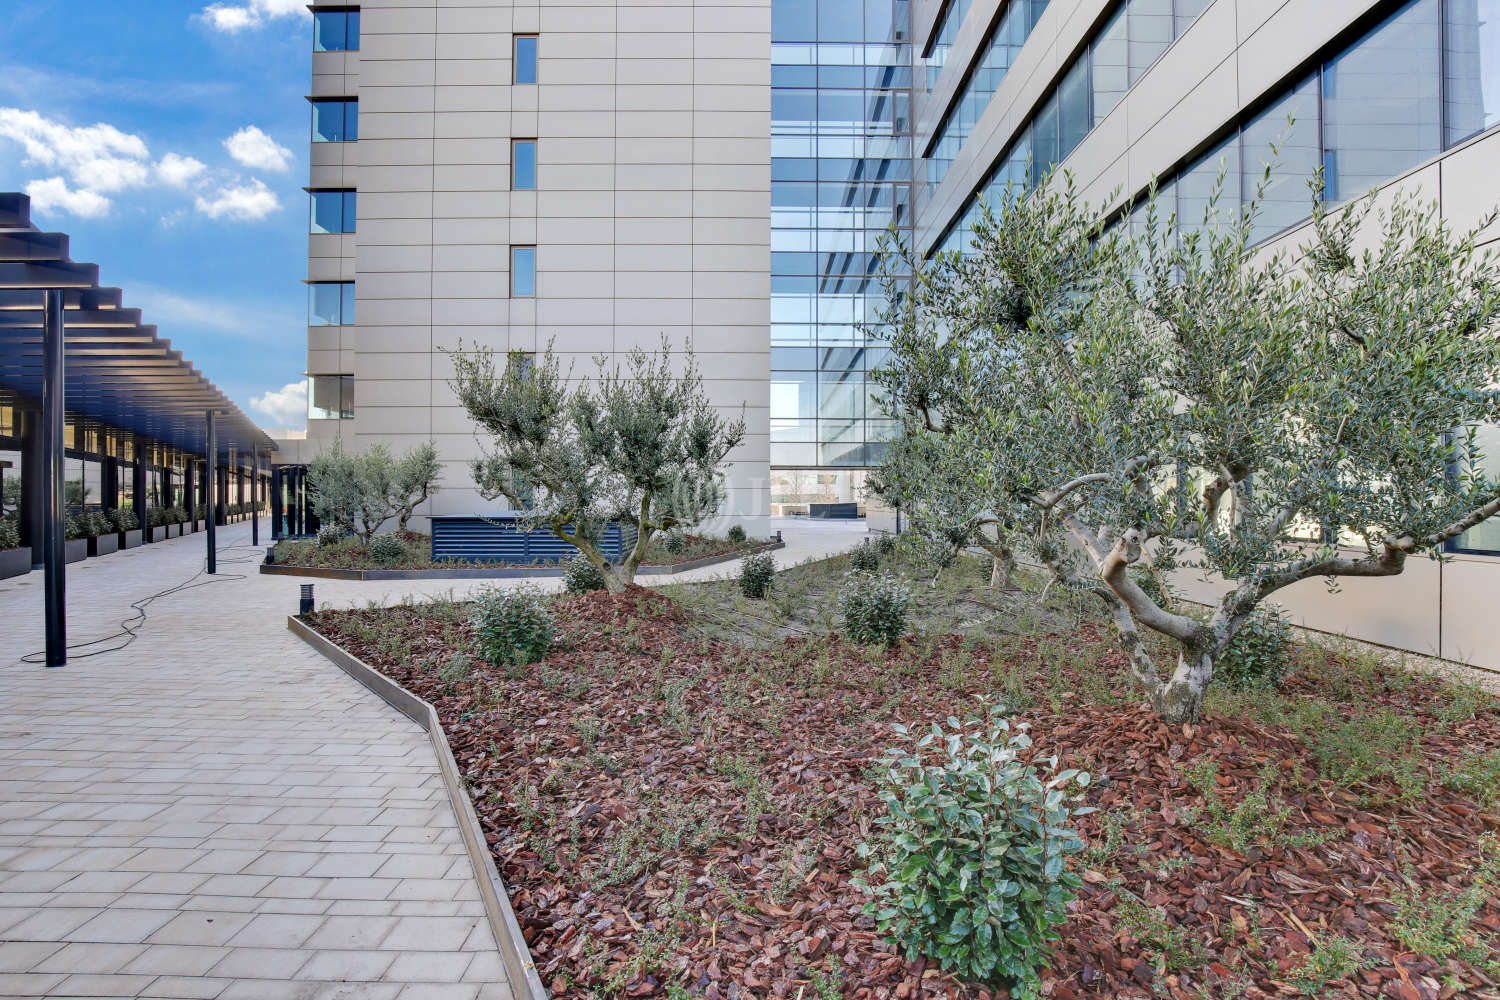 Oficina Madrid, 28050 - P. E. Adequa - Edificio 4